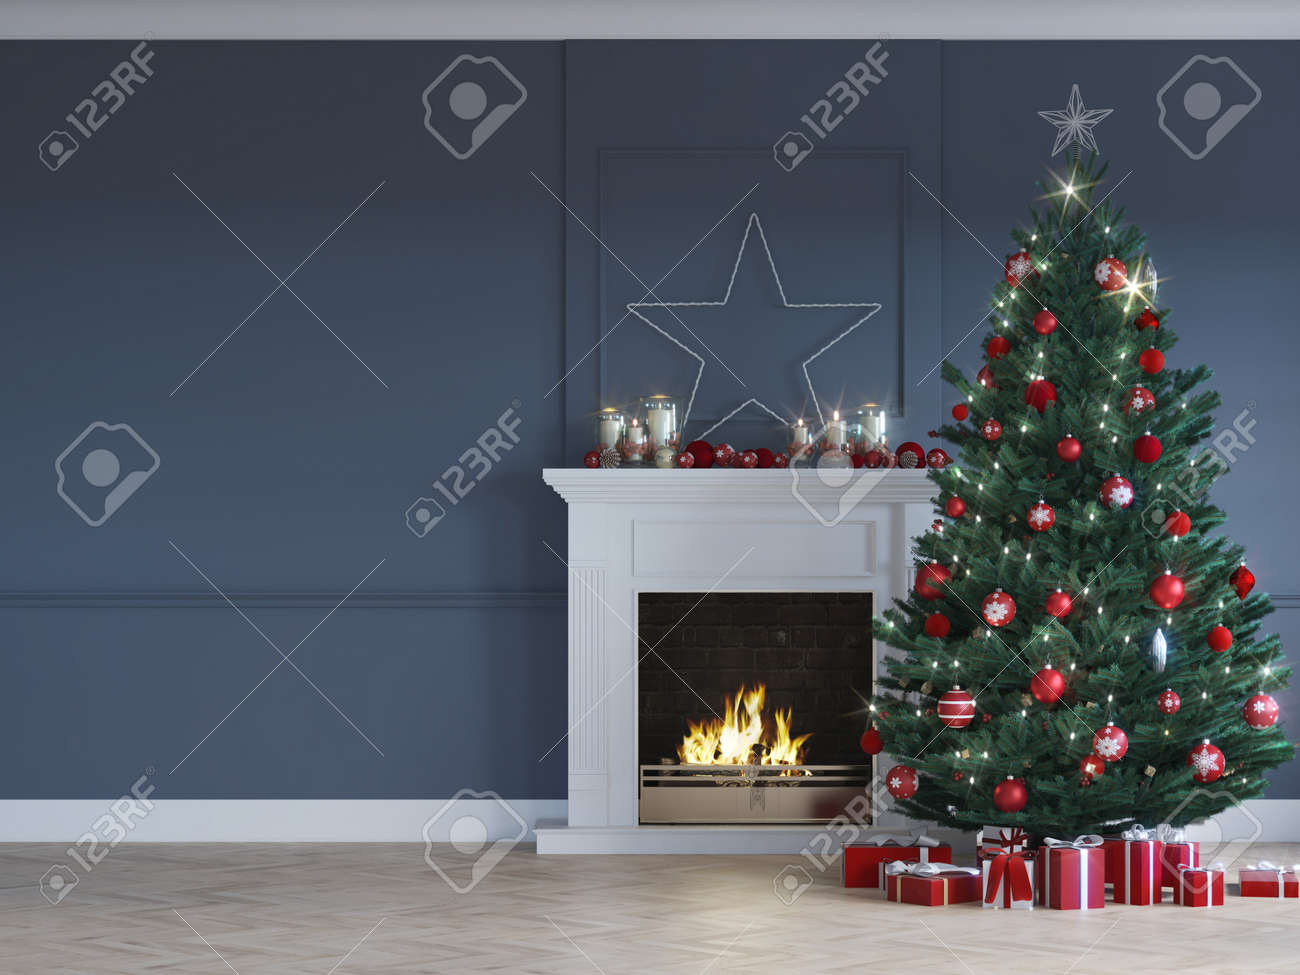 3D-Illustration. christmas scene with decorated tree and fireplace. - 133982547